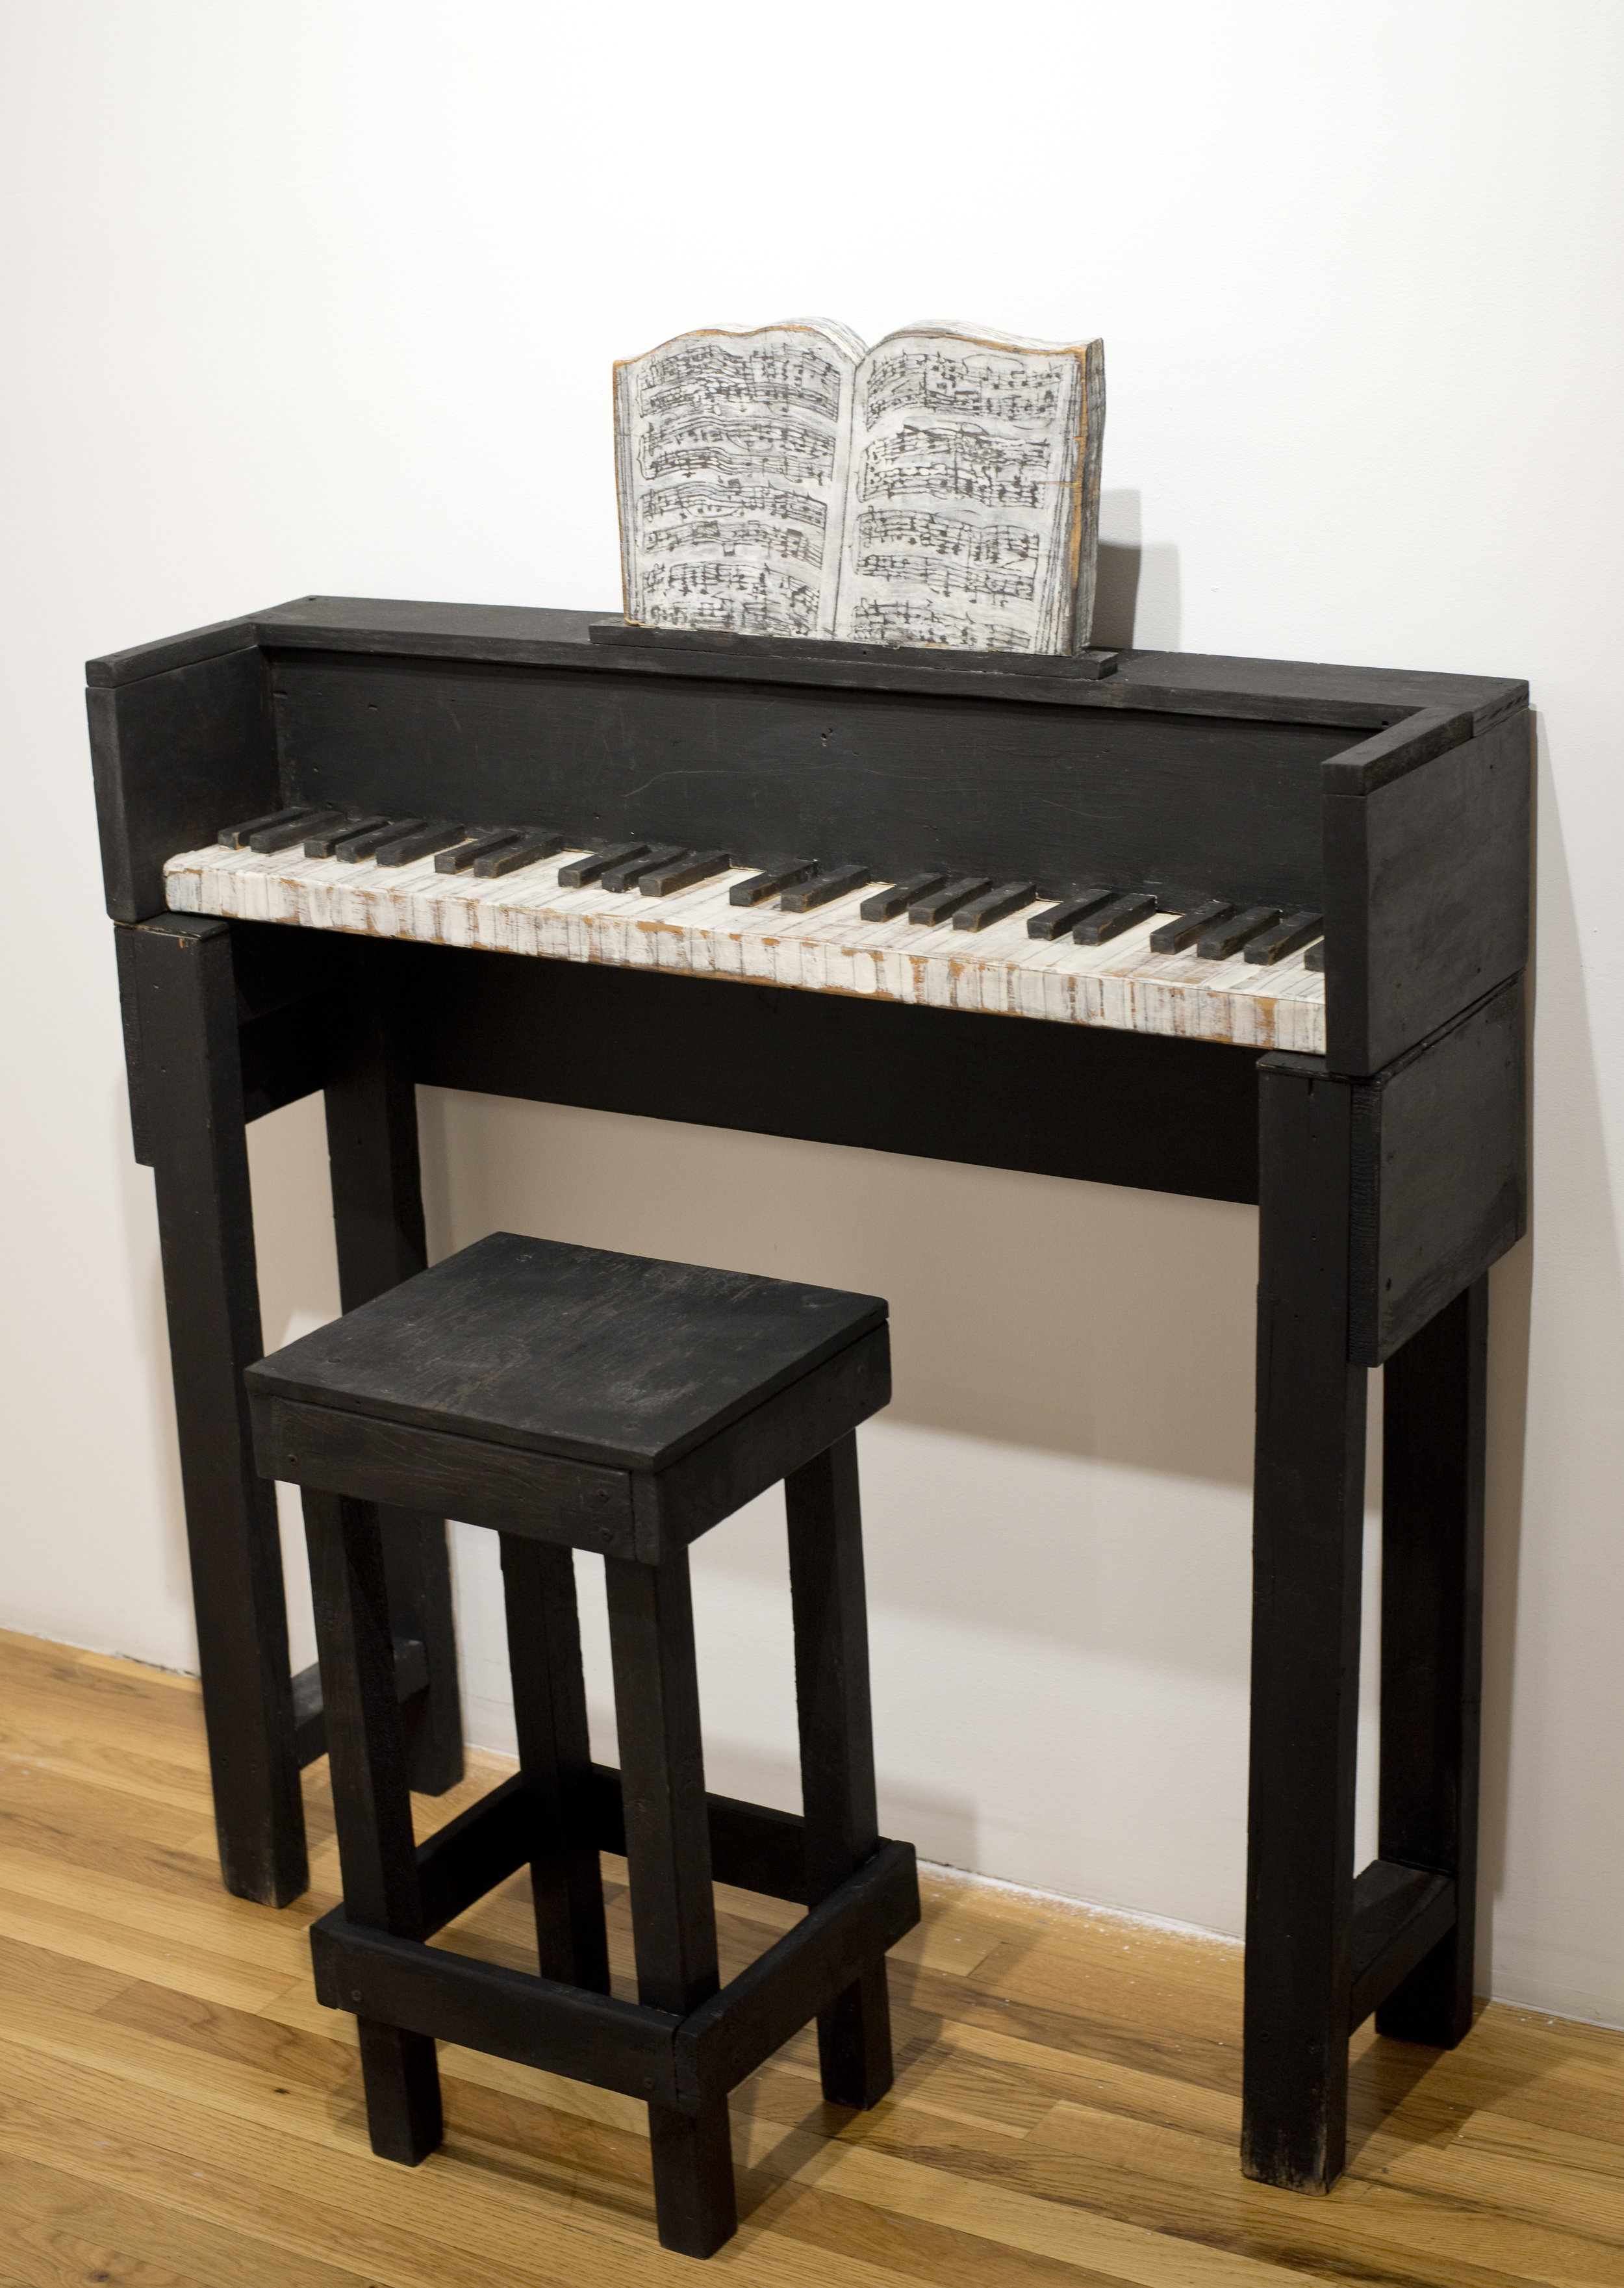 Jenny Snider,  SOLO:Ev'ry Time We Say Goodbye,  1999, acrylic and pencil on wood, Piano: 48h x 39w x 10.5d in. Stool: 24h x 12.5w x 11d in.